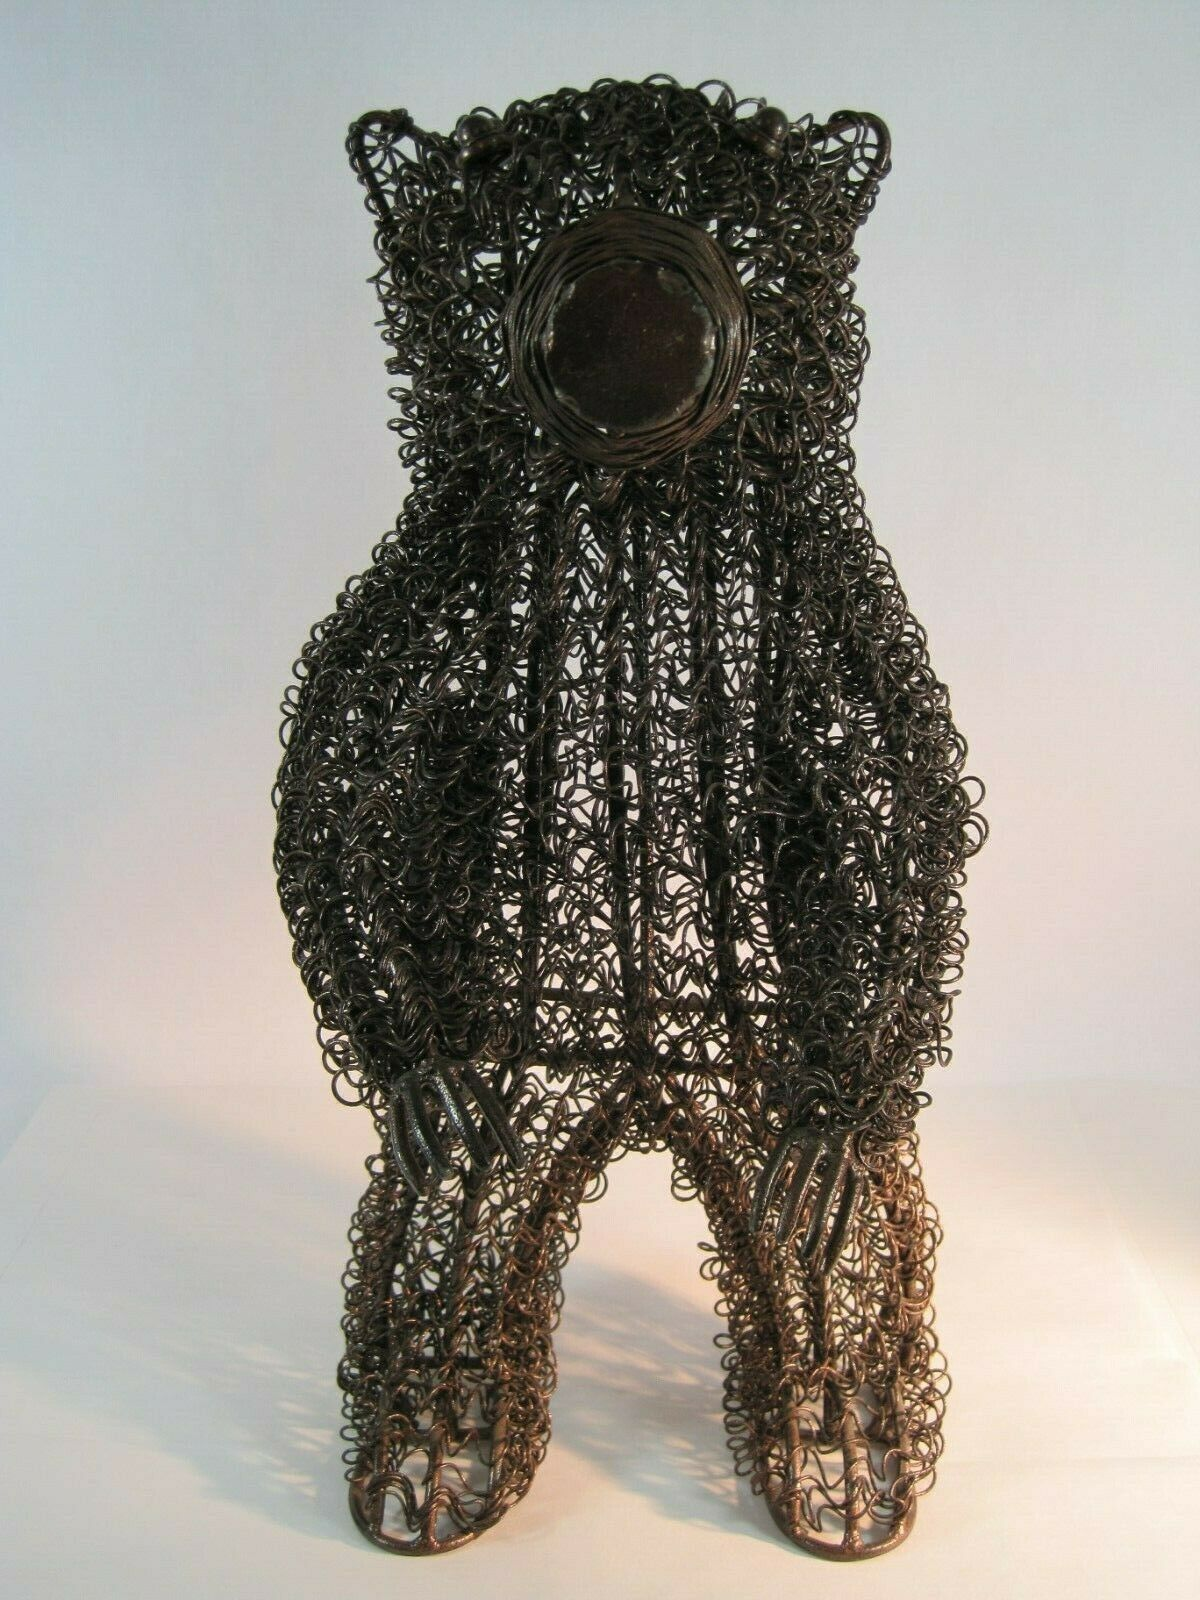 Tall Standing Bear Metal Swirls Cabin Ranch Wildlife Decor Country Themed Art